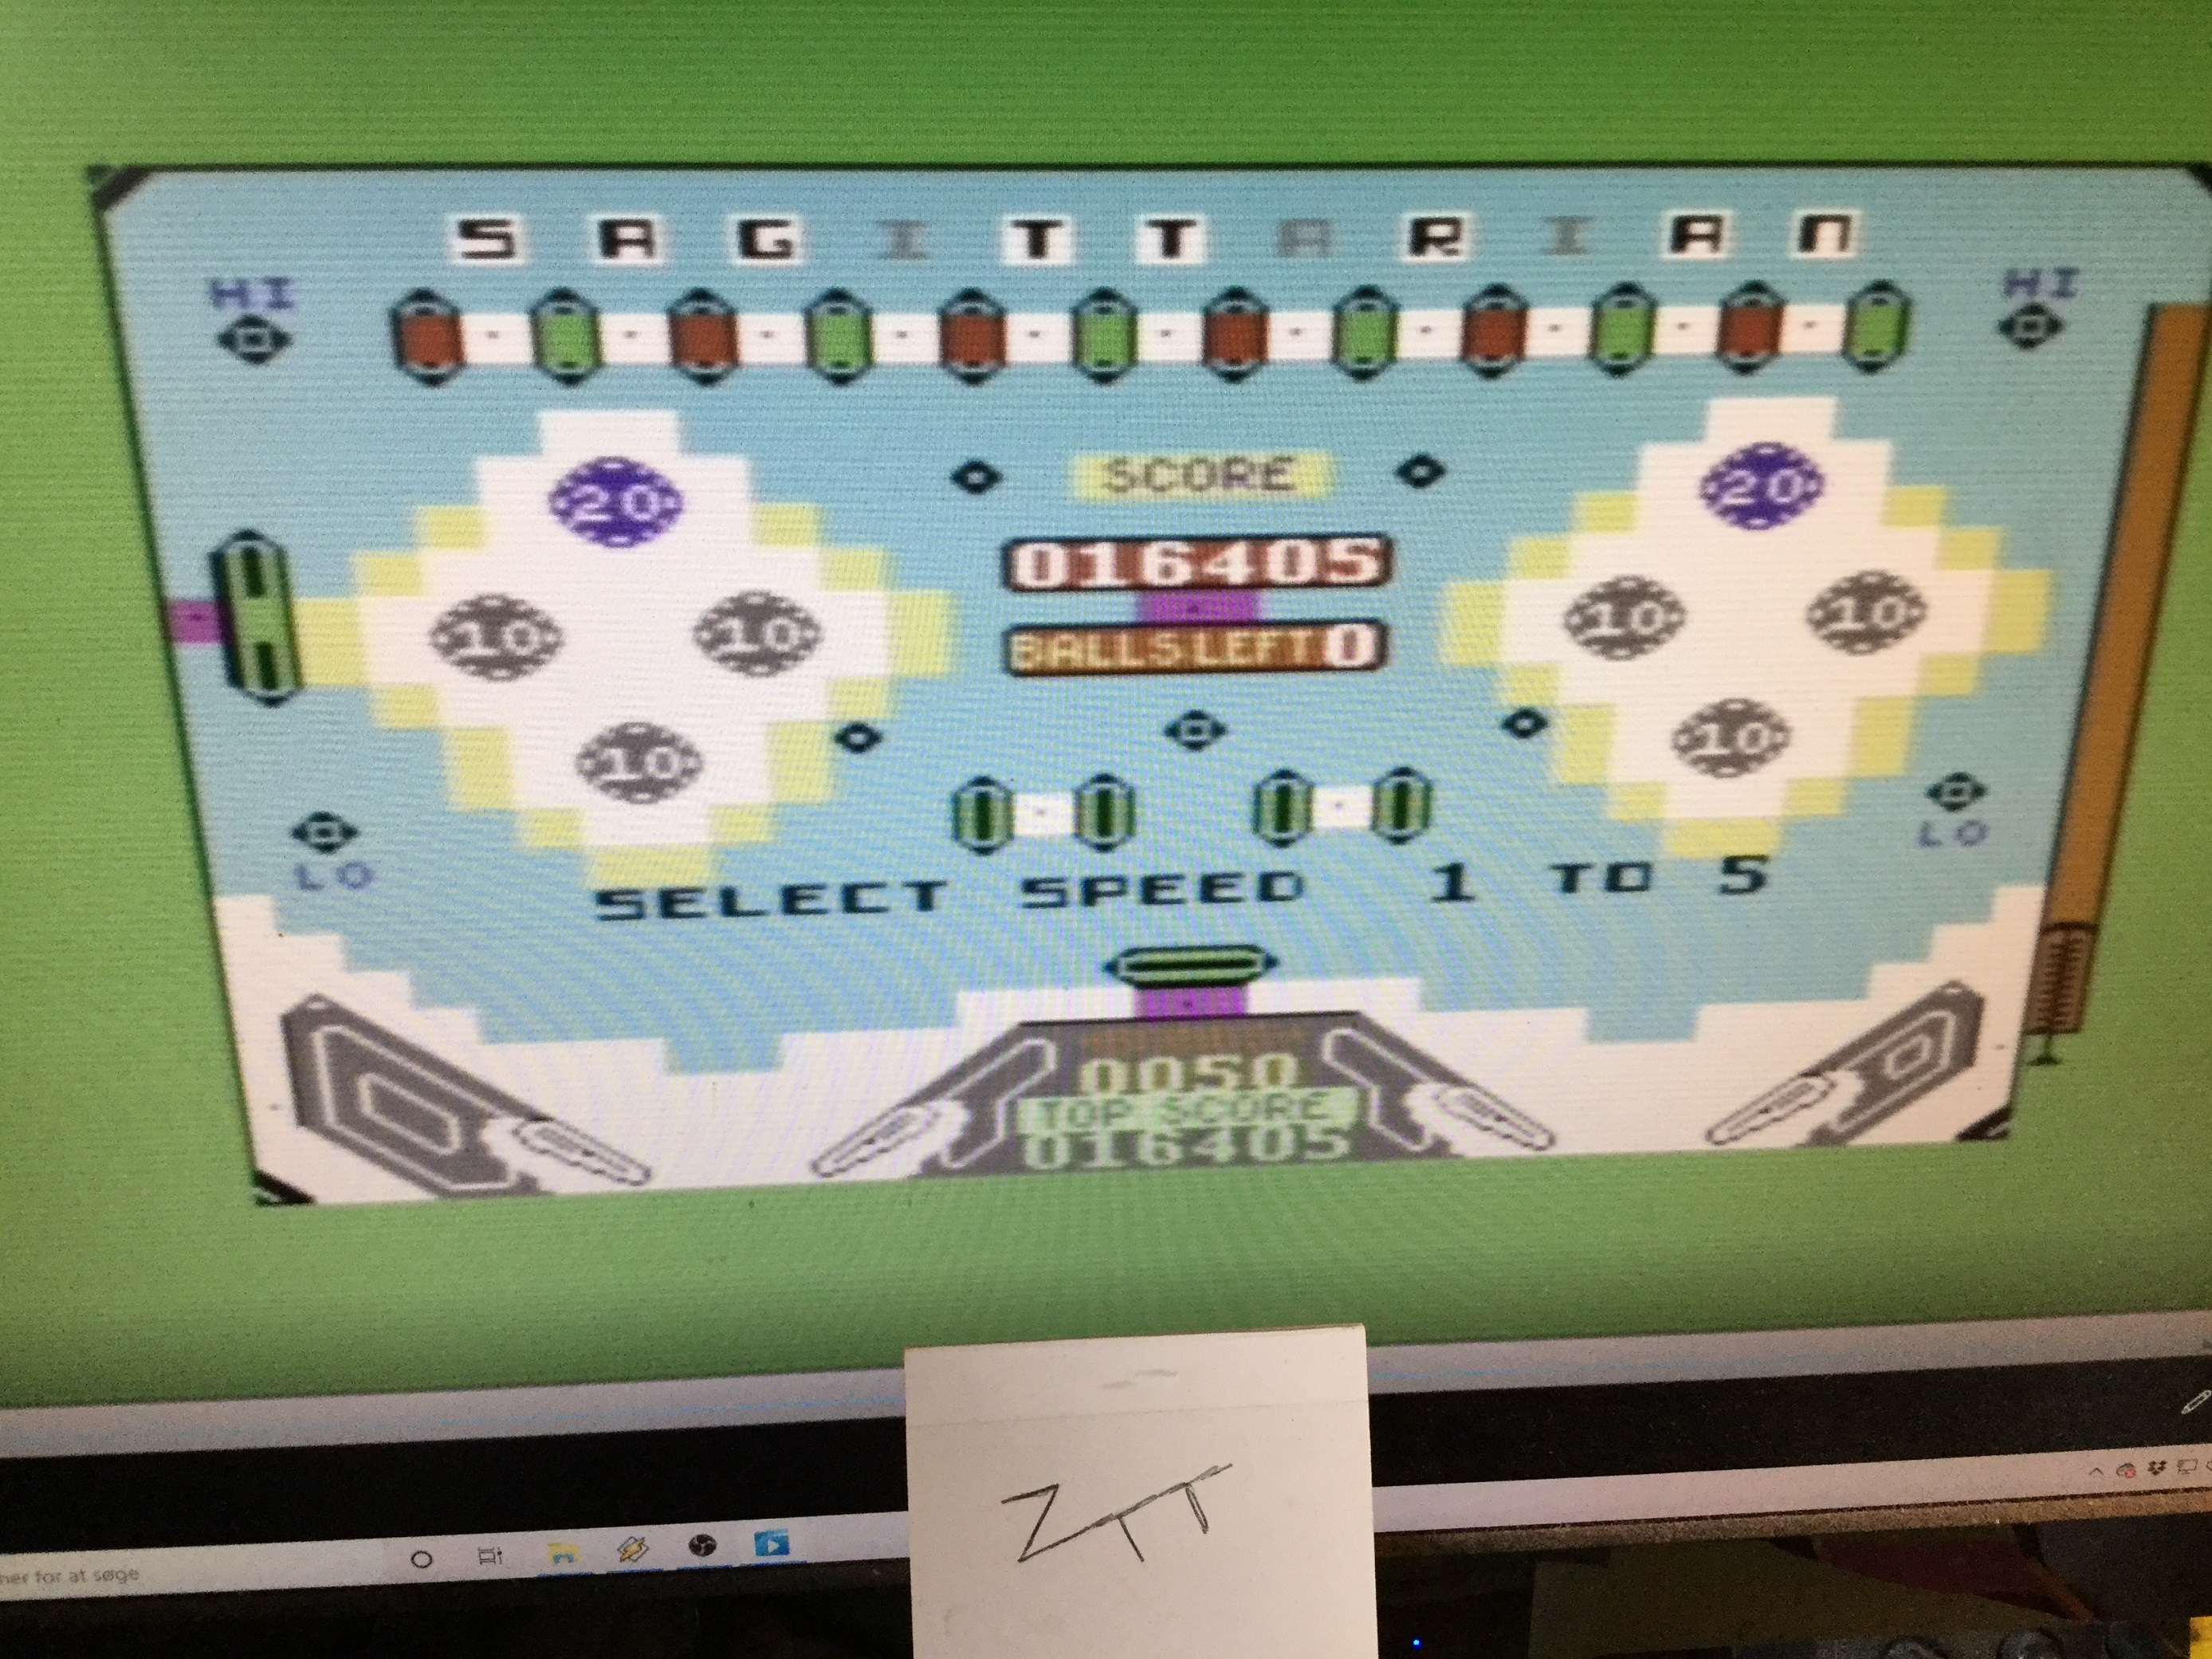 Frankie: Pinball Wizard: Speed 1 (Commodore 64 Emulated) 16,405 points on 2021-01-16 05:01:05